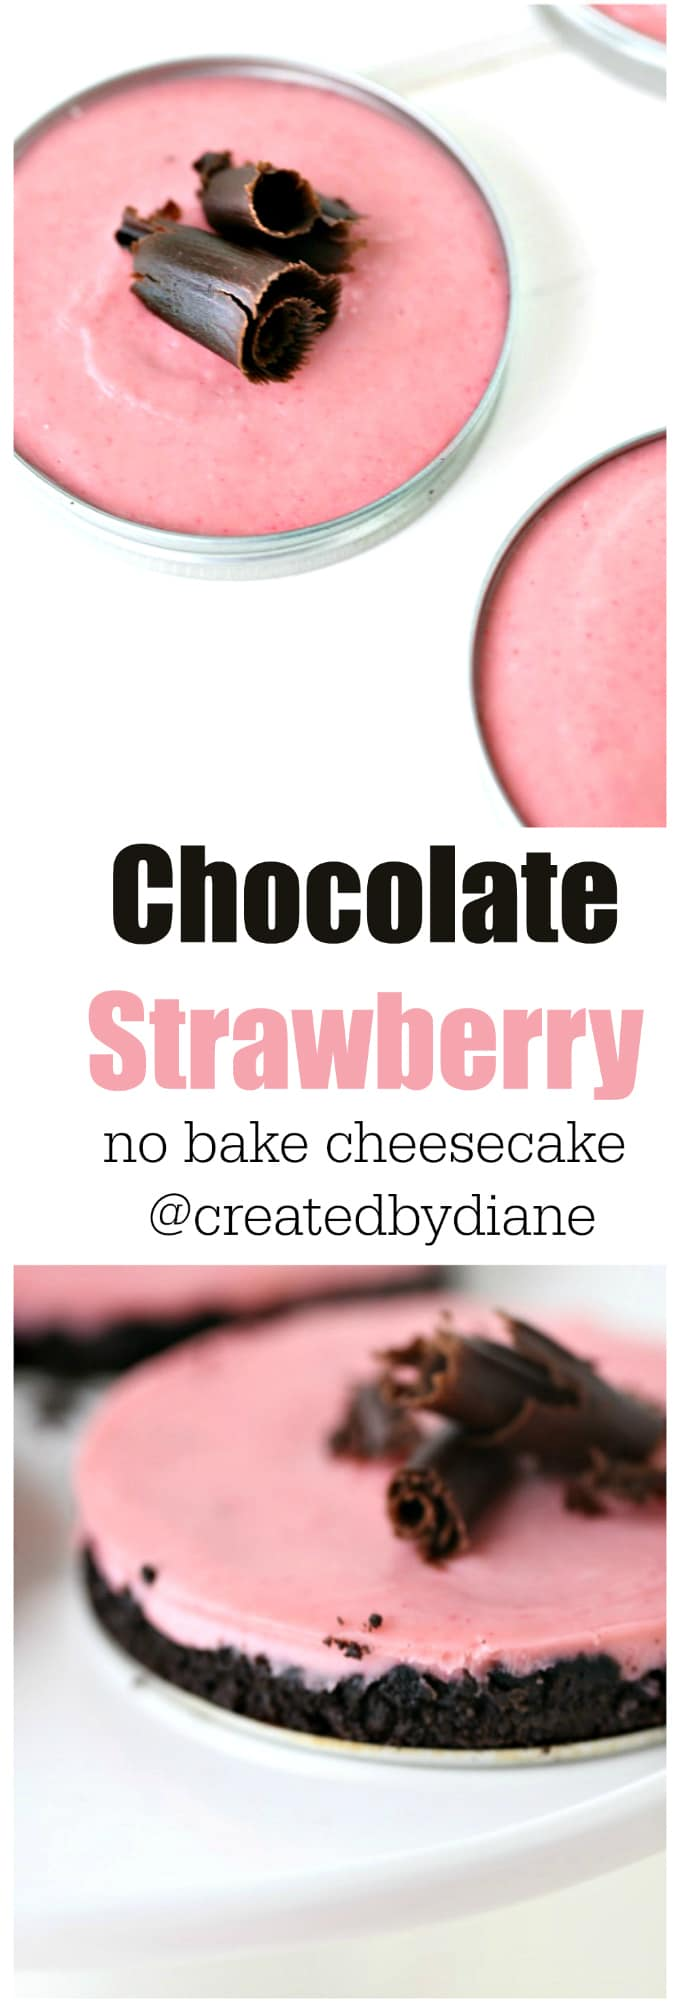 chocolate-strawberry-no-bake-cheesecake-from-www-createdby-diane